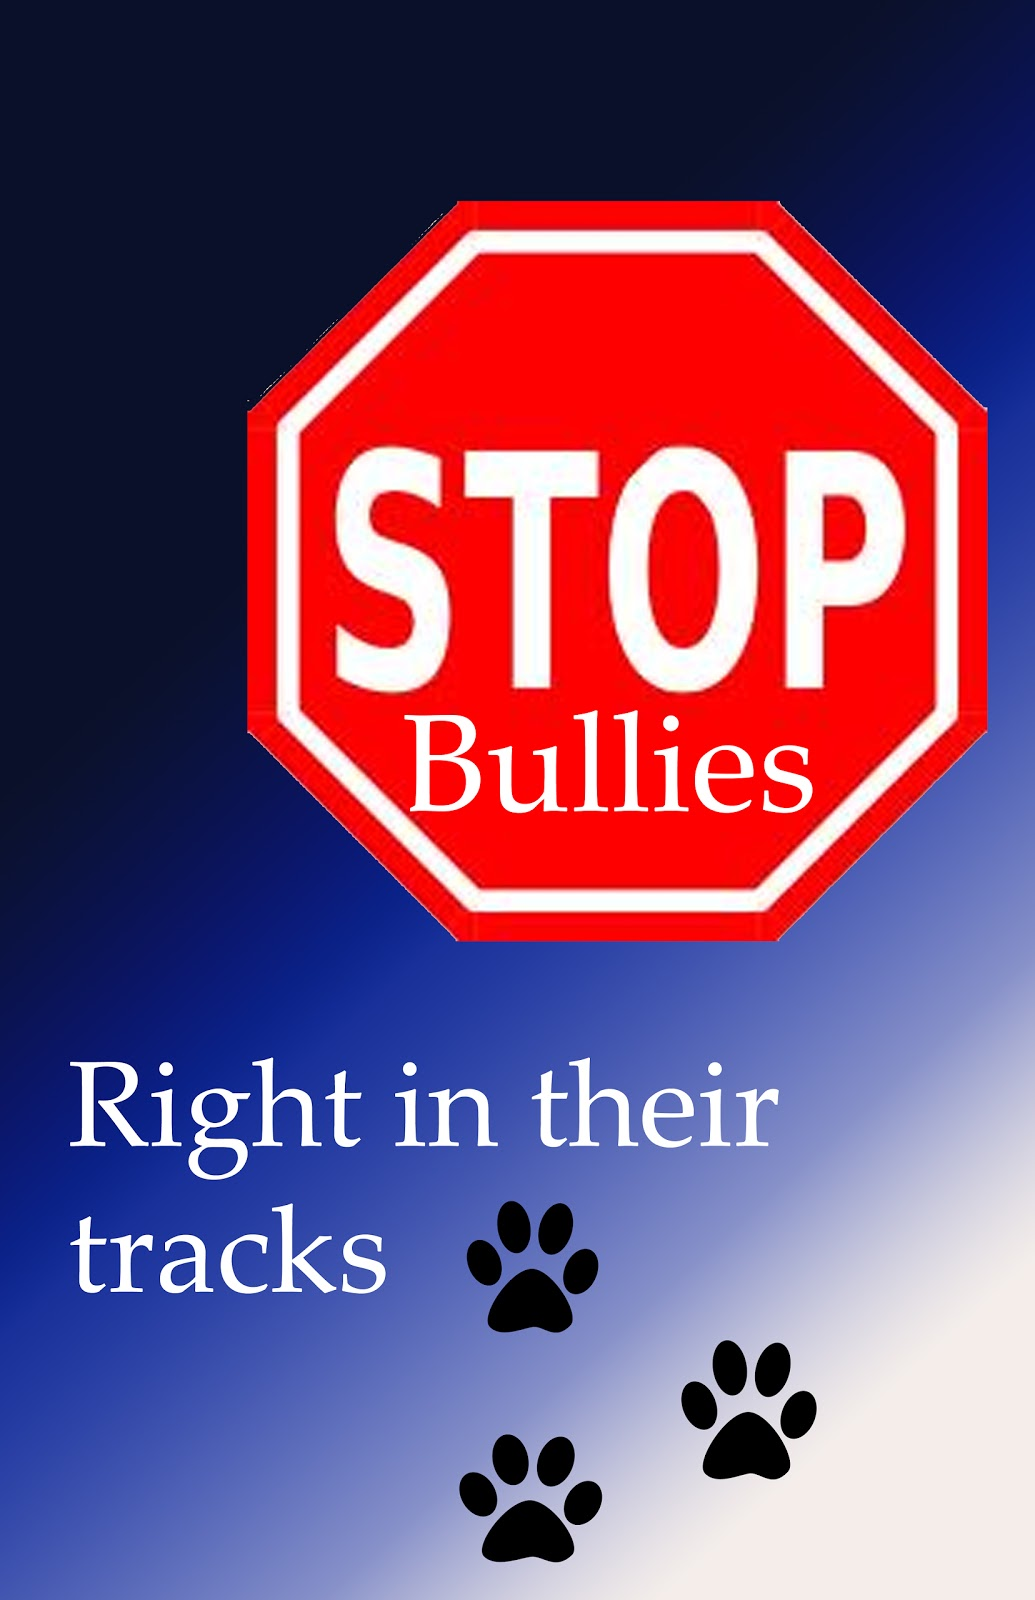 stop bullying Bullying is a major problem that we haven't been able to stop, every year more and more people become bullied at school and online, if we take a stand against bullying and not encouragedit i believe that we can put an end to it.